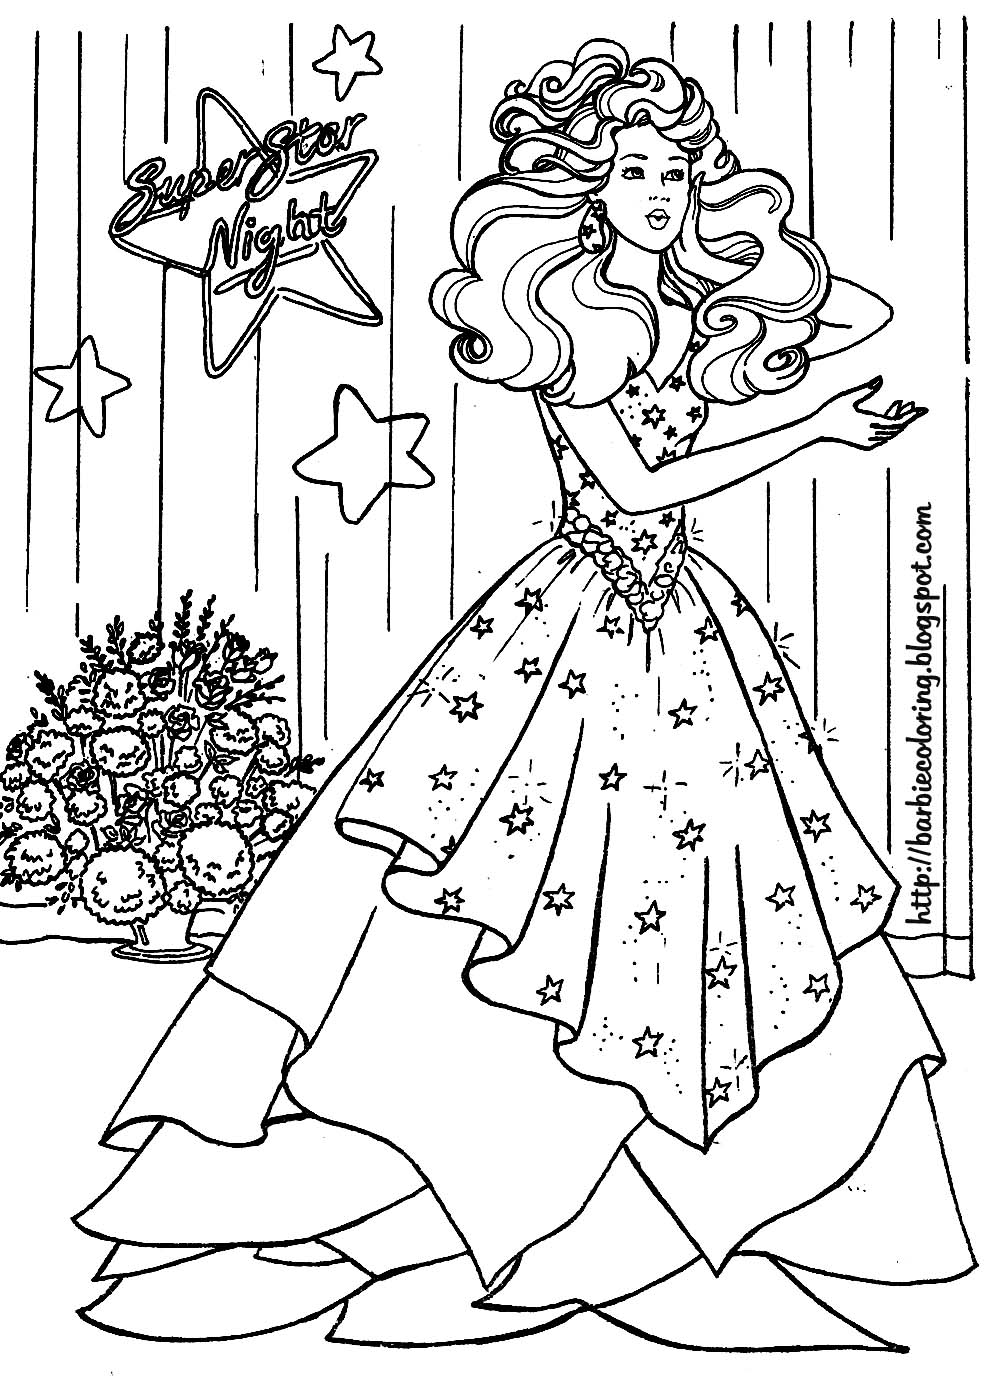 barbie pictures to colour and print 87 printable barbie coloring pages for girls all to print colour barbie pictures and